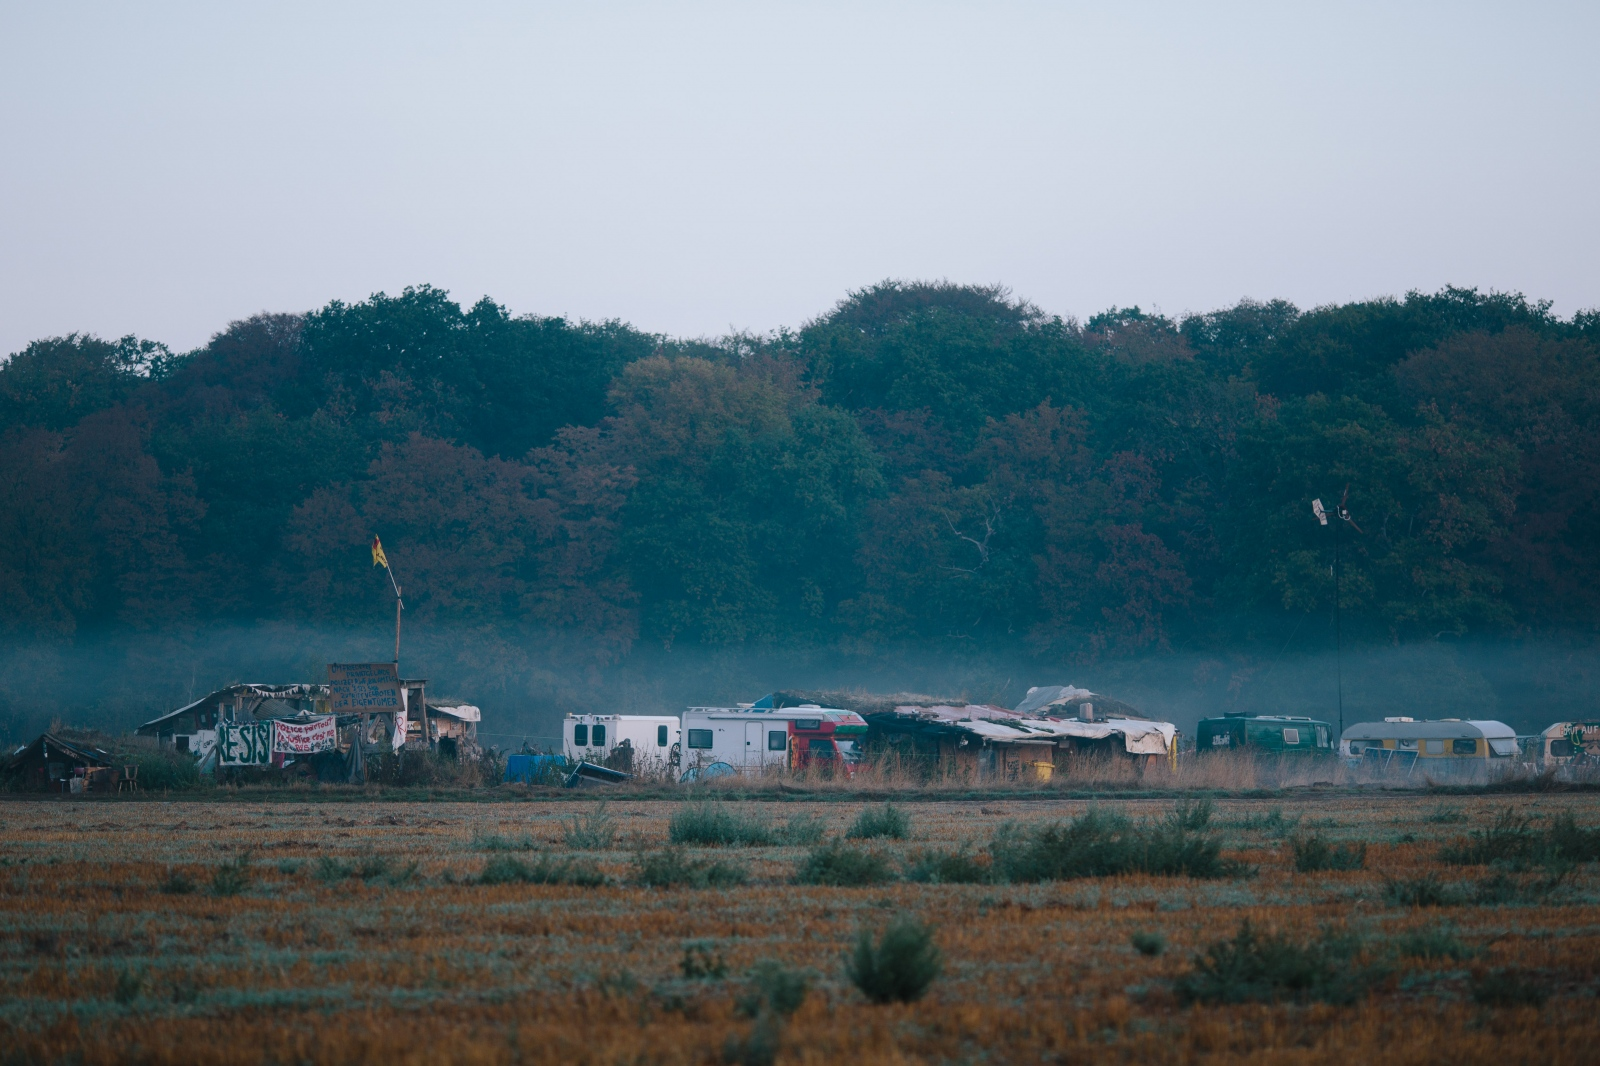 Camp near Hambach Forest. 09-14-2019